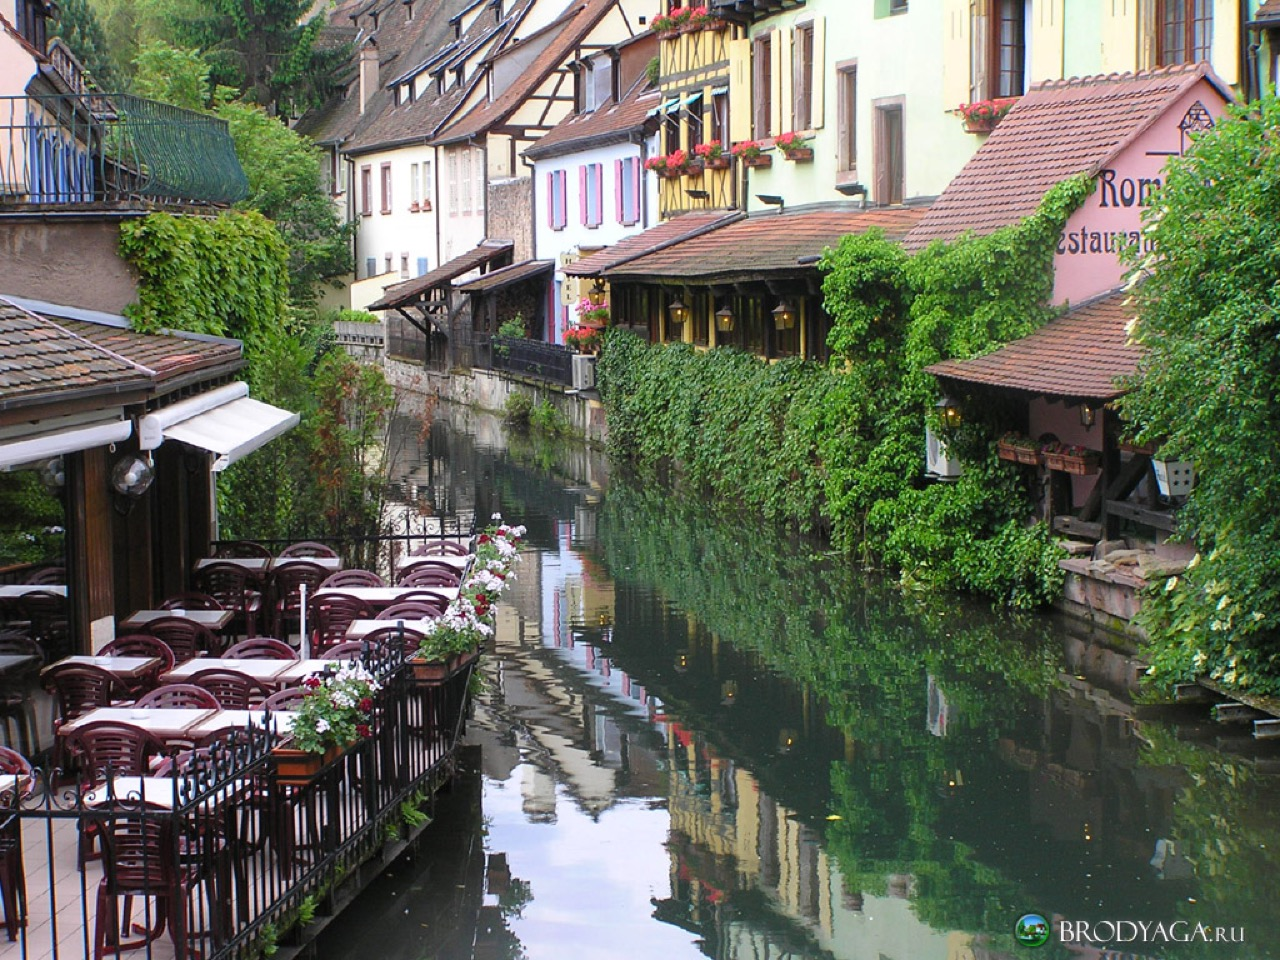 Hotel saint martin colmar a hotel full of history in colmar for Piscine unterlinden colmar